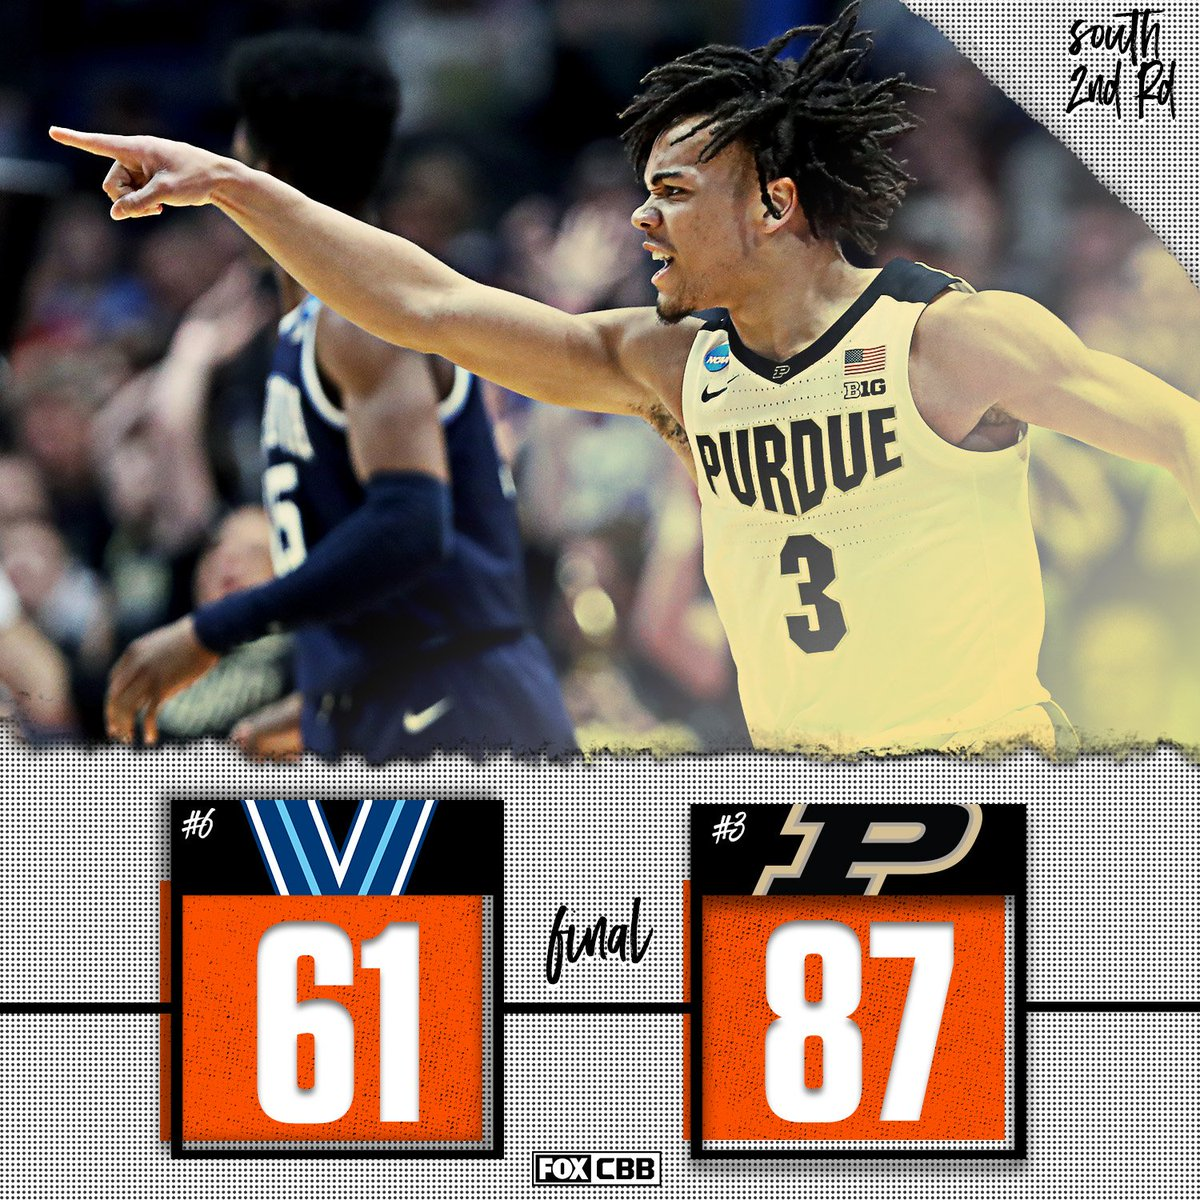 THERE WILL BE A NEW CHAMPION  @BoilerBall (& Carsen Edwards) dominate in their 2nd round victory over Villanova!